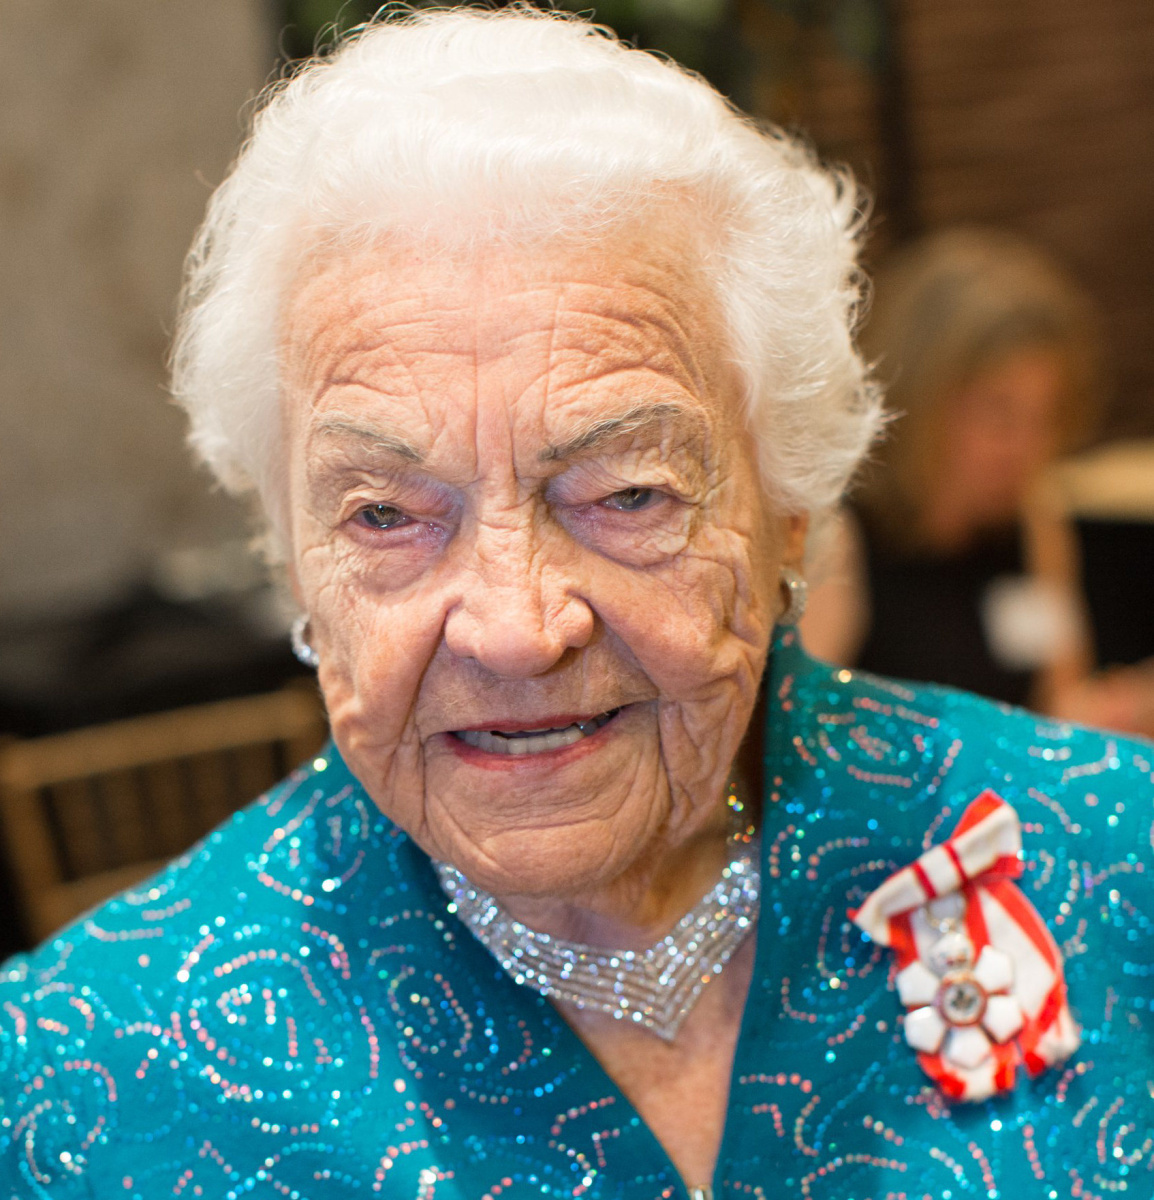 Hazel McCallion close-up portrait Google image from https://images.thestar.com/content/dam/thestar/news/city_hall/2013/10/24/hazel_mccallion_awarded_170000_in_dismissed_conflict_case/hazel_mccallion.jpg